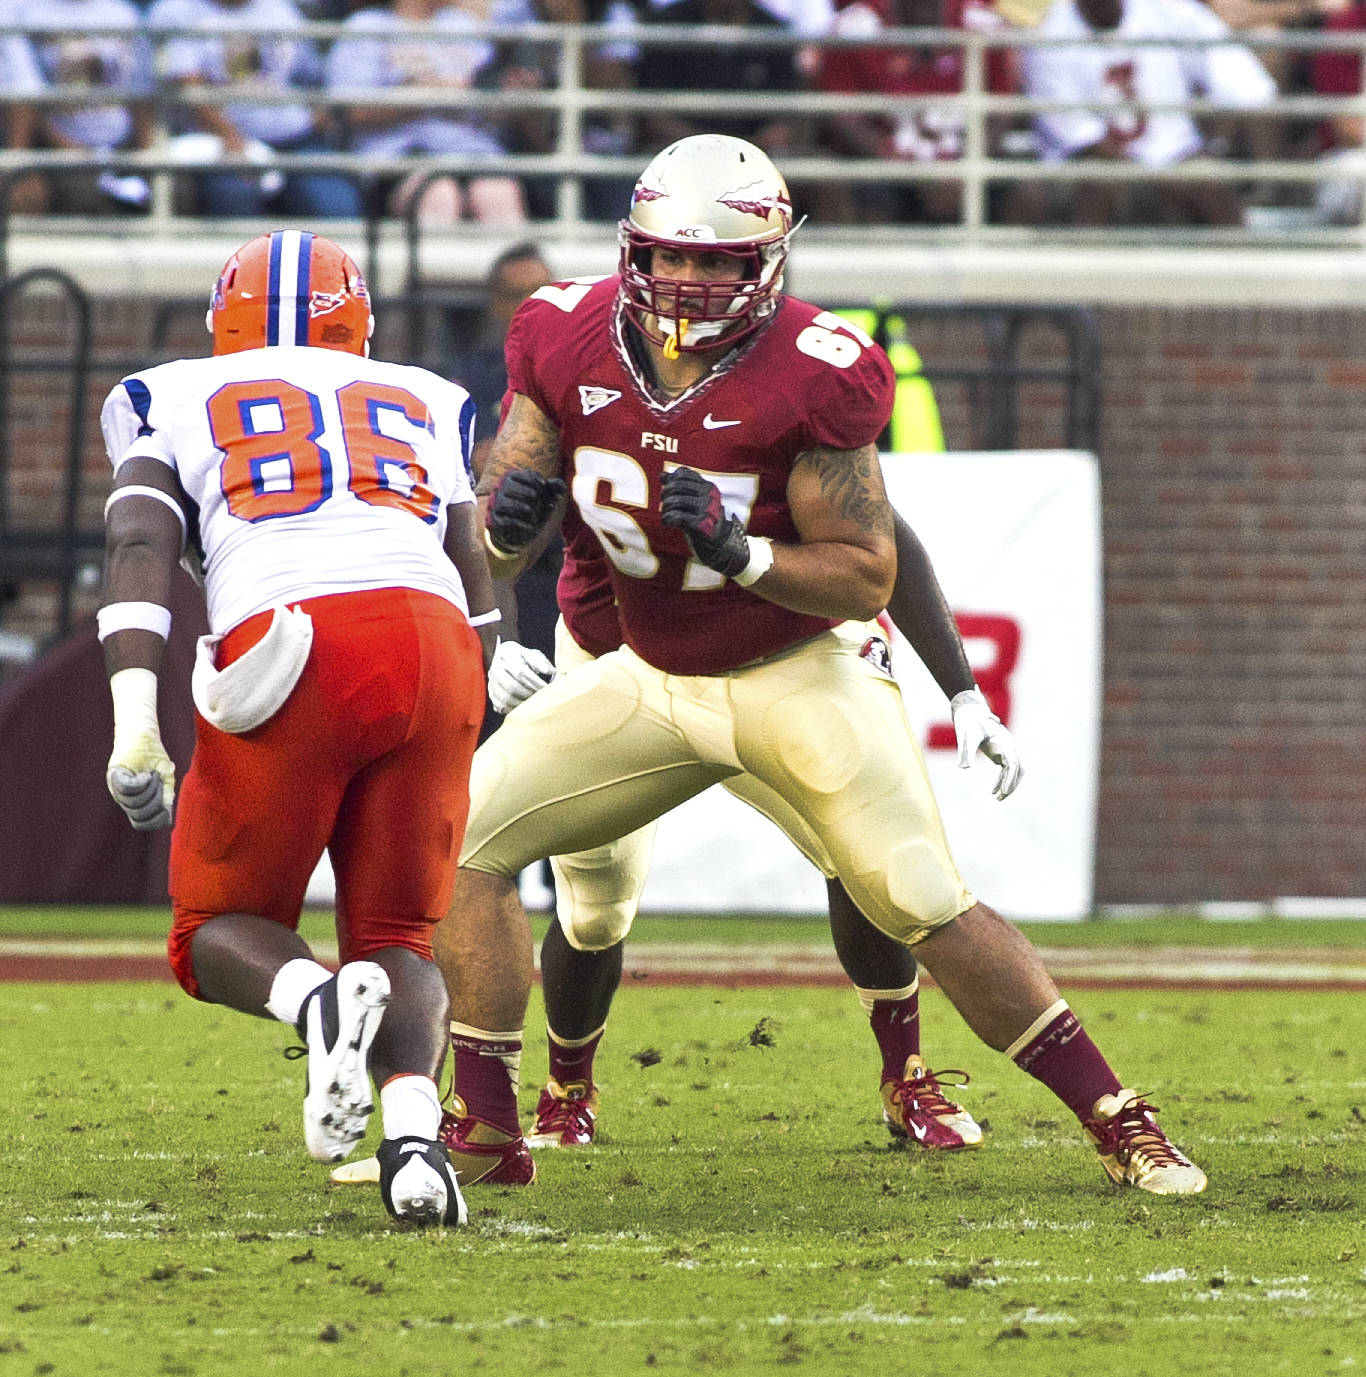 Daniel Glauser (67),  FSU vs Savannah State, 9/8/12 (Photo by Steve Musco)